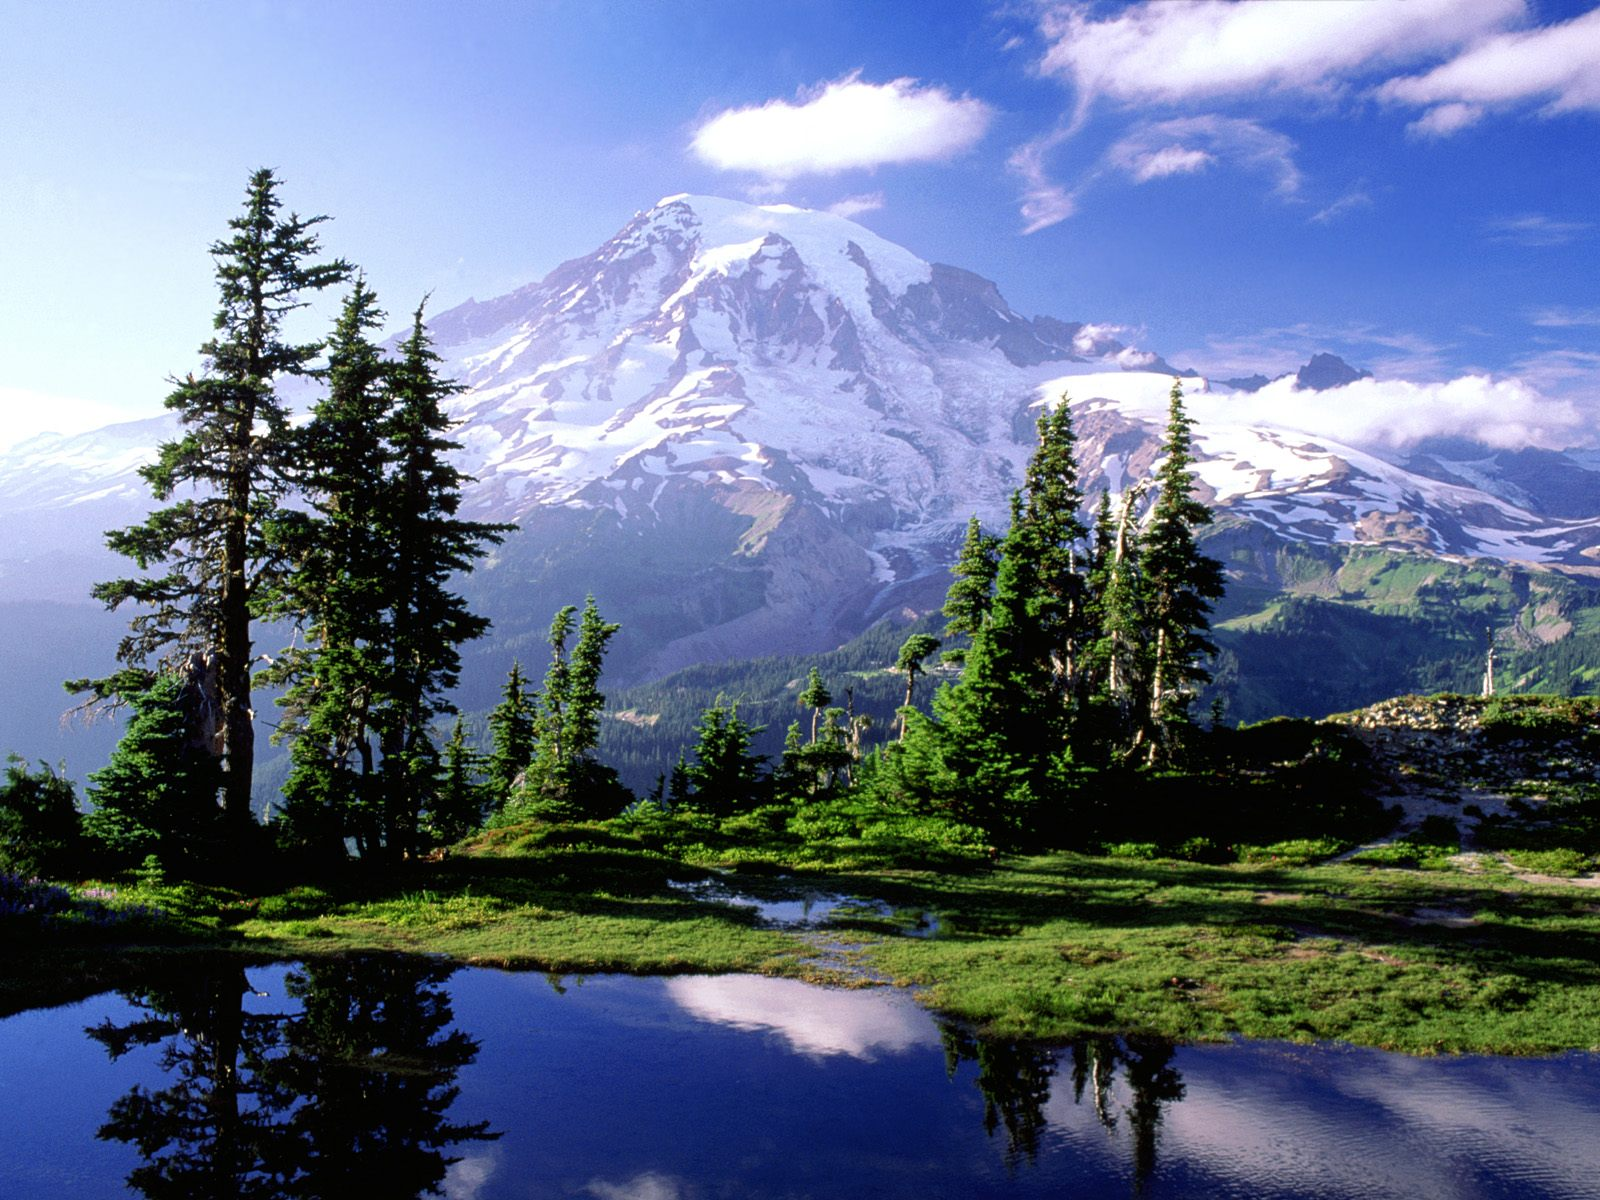 Top 37 Most Beautiful Mountains Wallpapers In HD